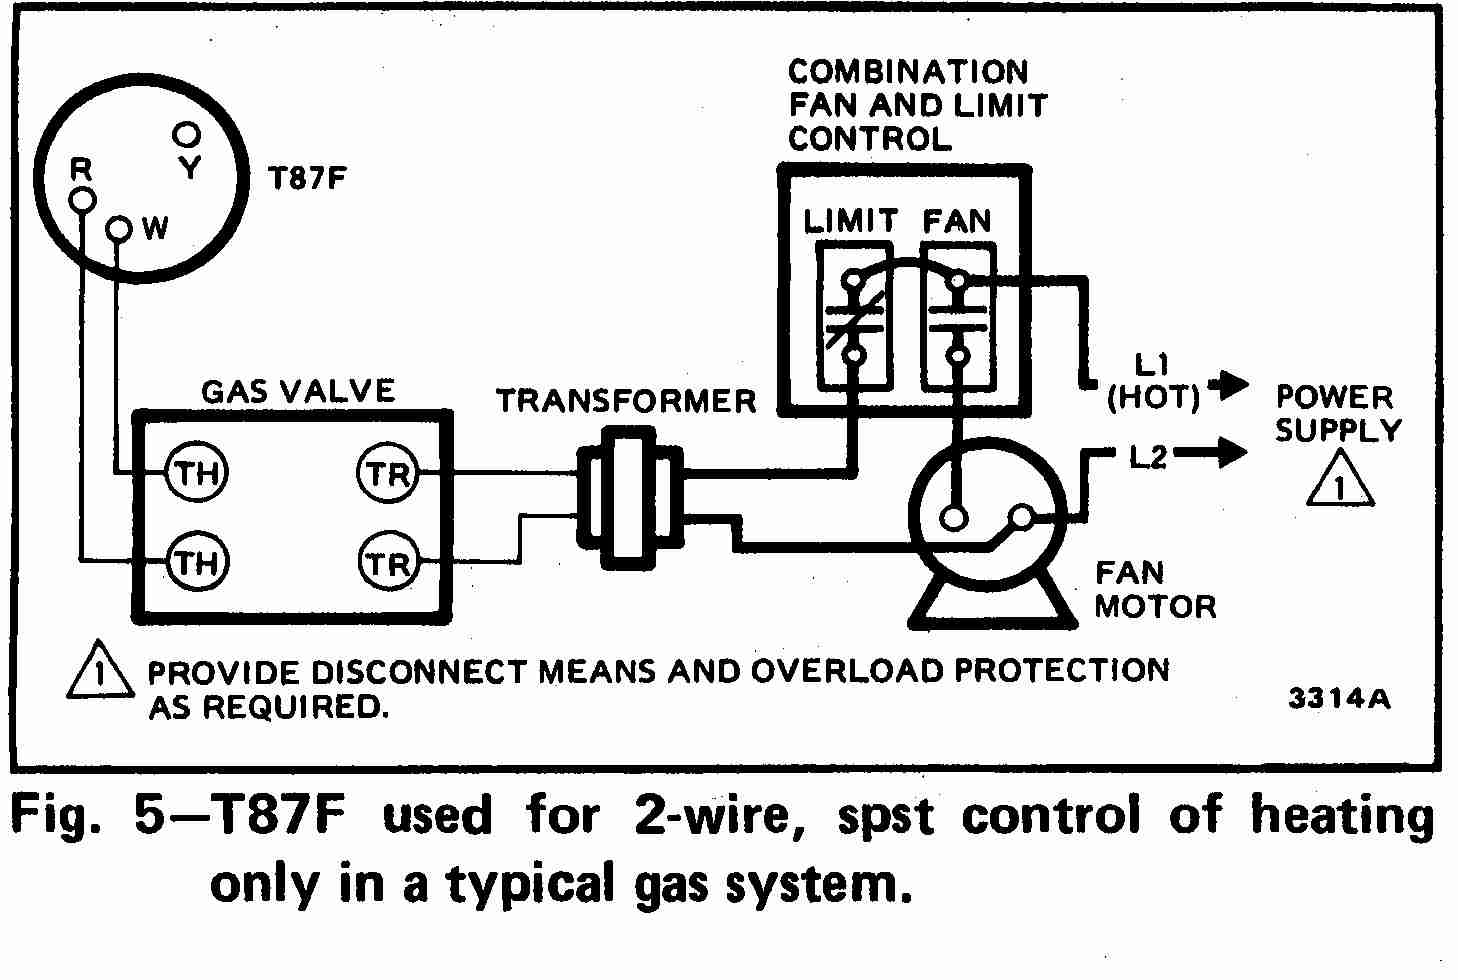 TT_T87F_0002_2Wg_DJF room thermostat wiring diagrams for hvac systems furnace gas valve wiring diagram at mifinder.co